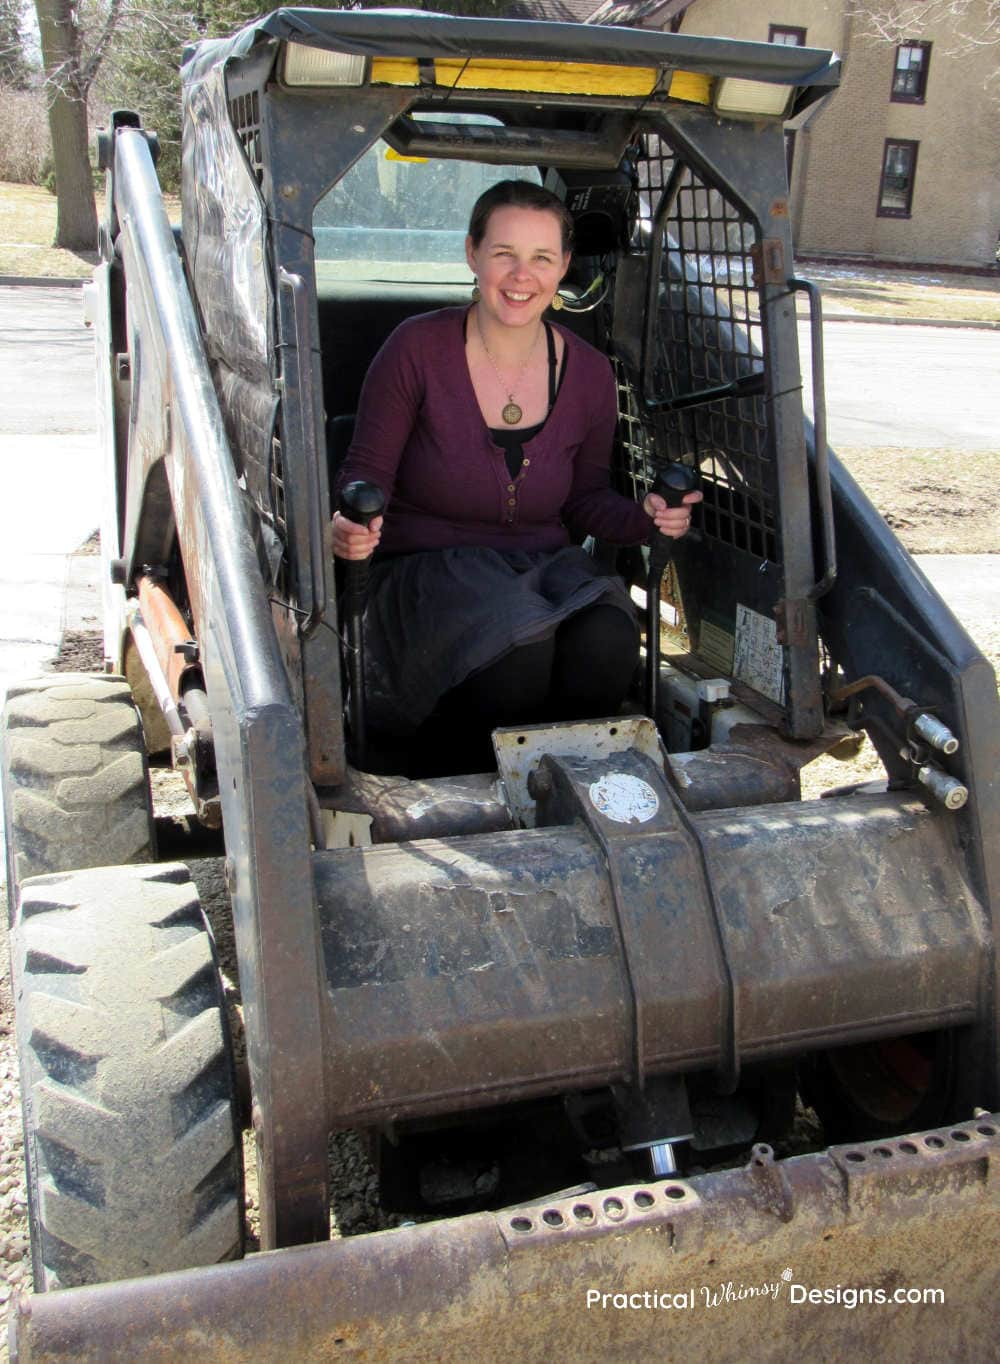 Lady sitting in a bobcat smiling